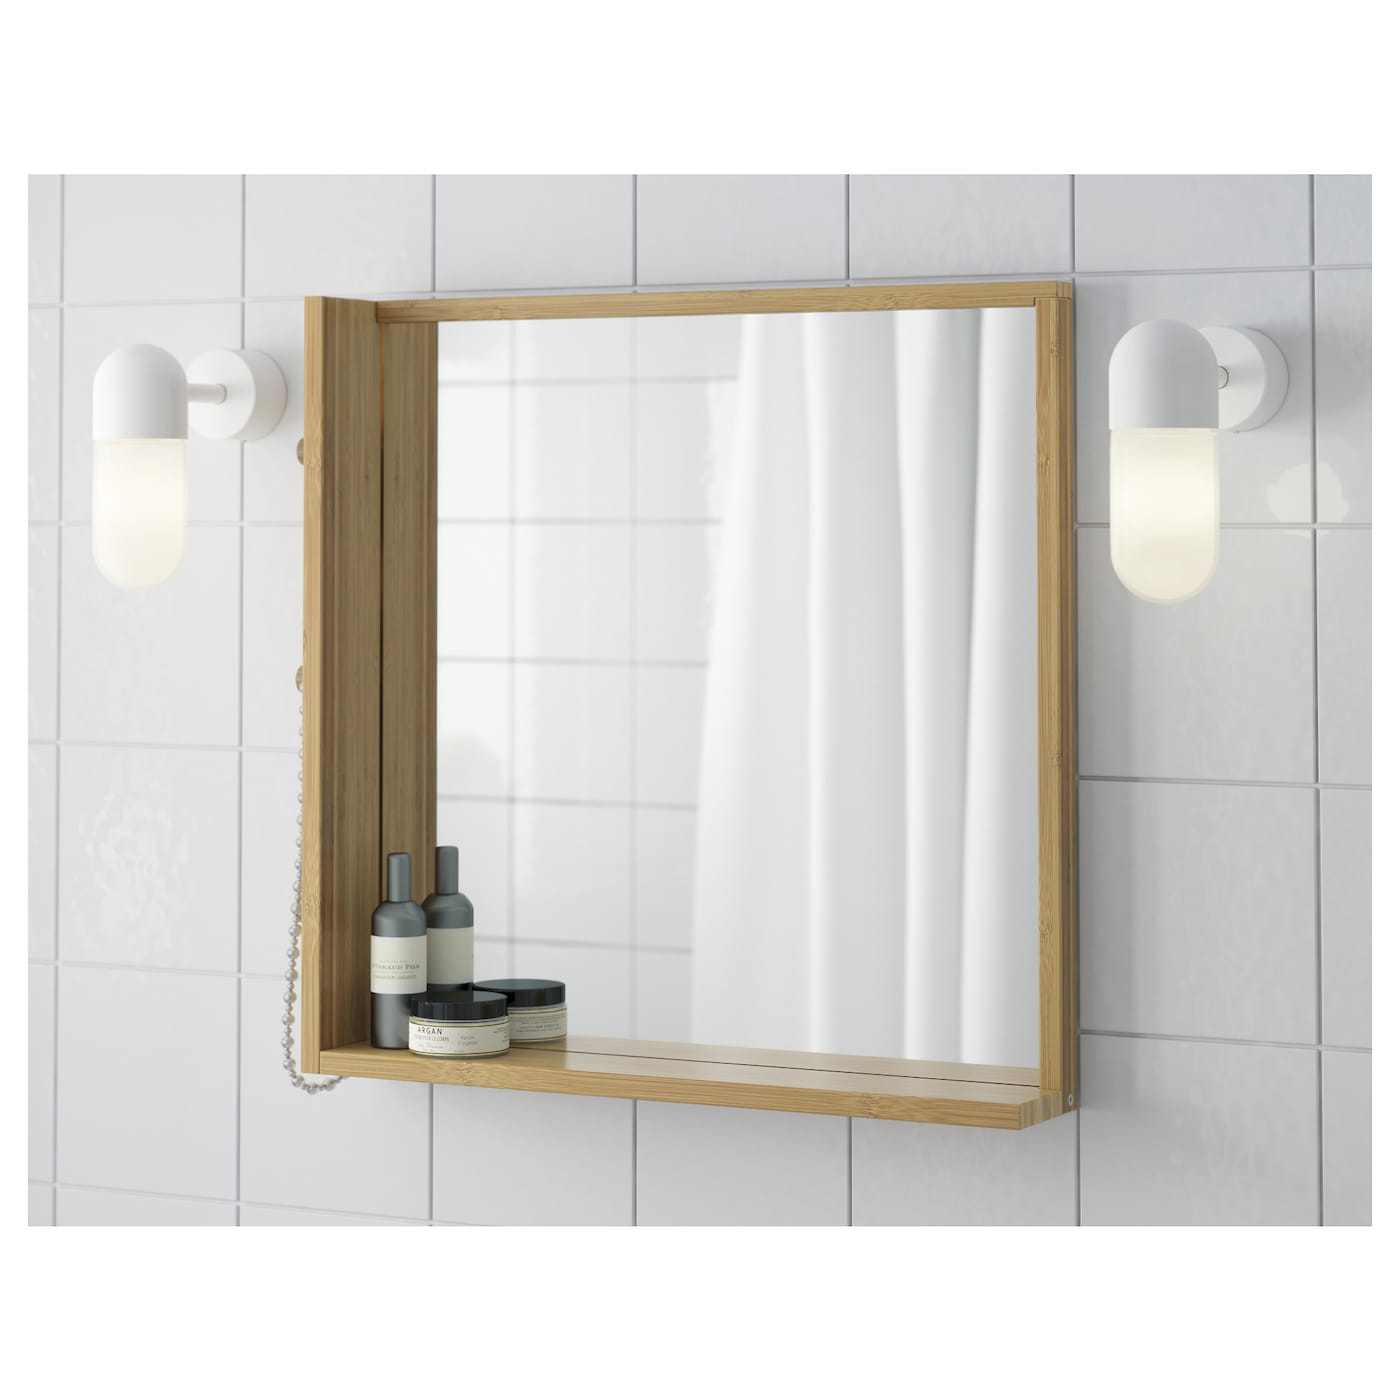 R grund mirror bamboo 53x50 cm ikea for Where to find mirrors